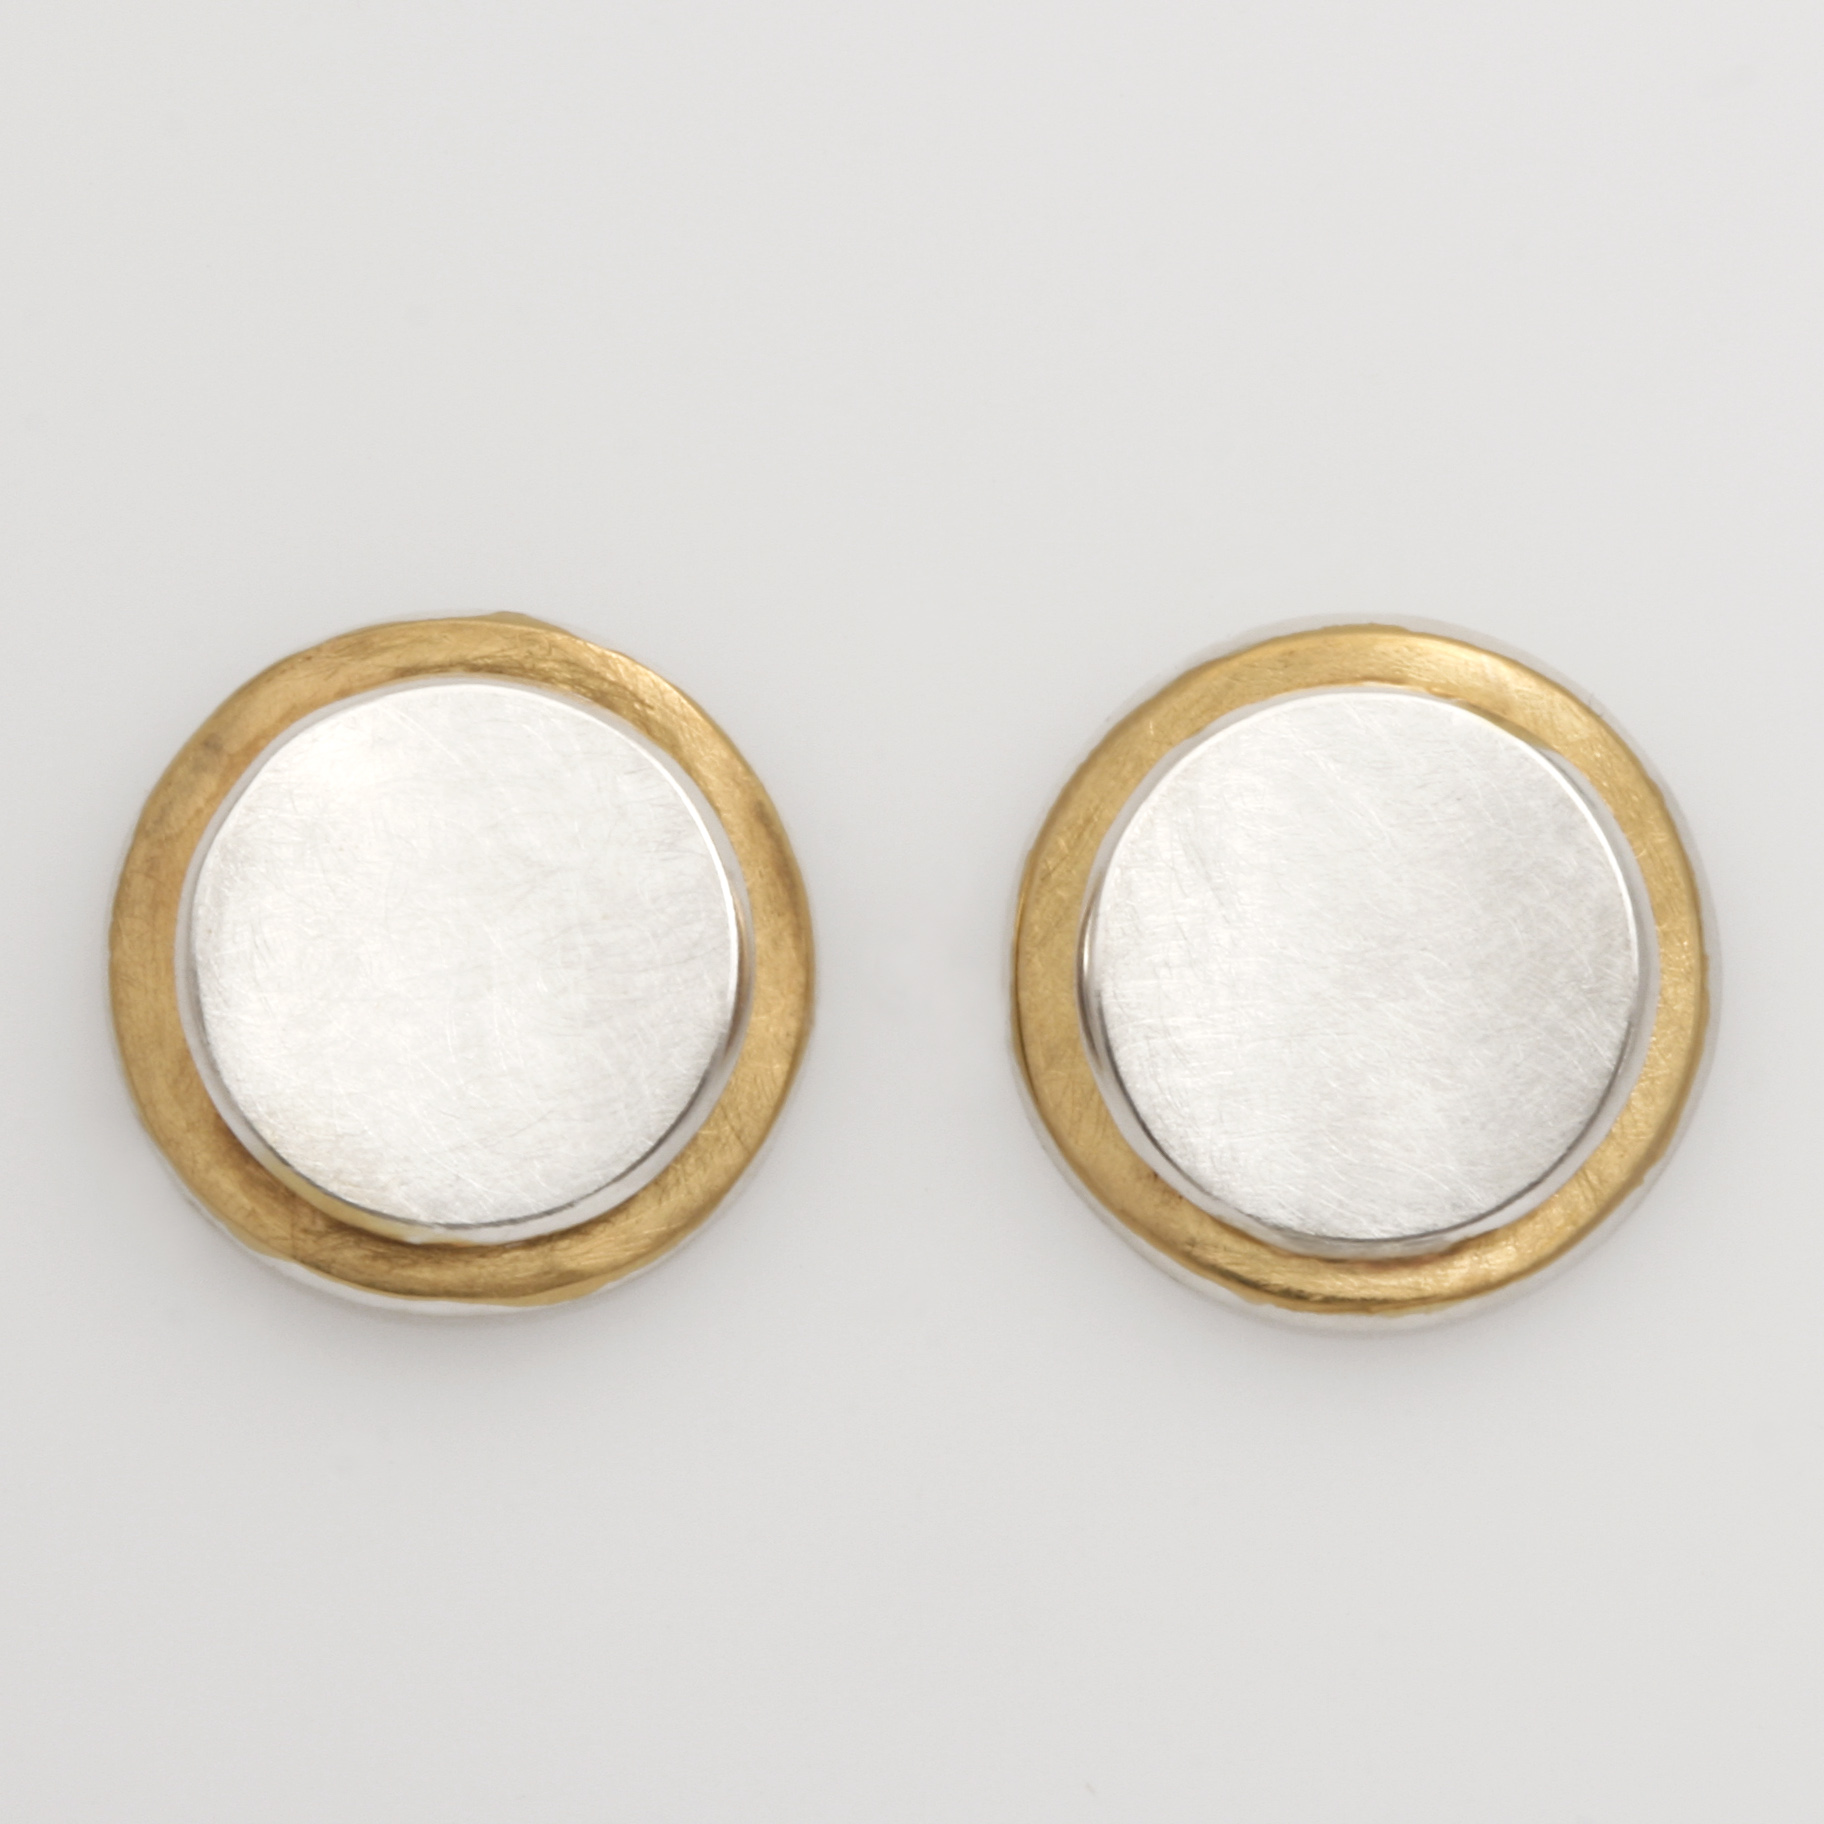 E0219 sterling silver and gold plated circle stud earrings $225